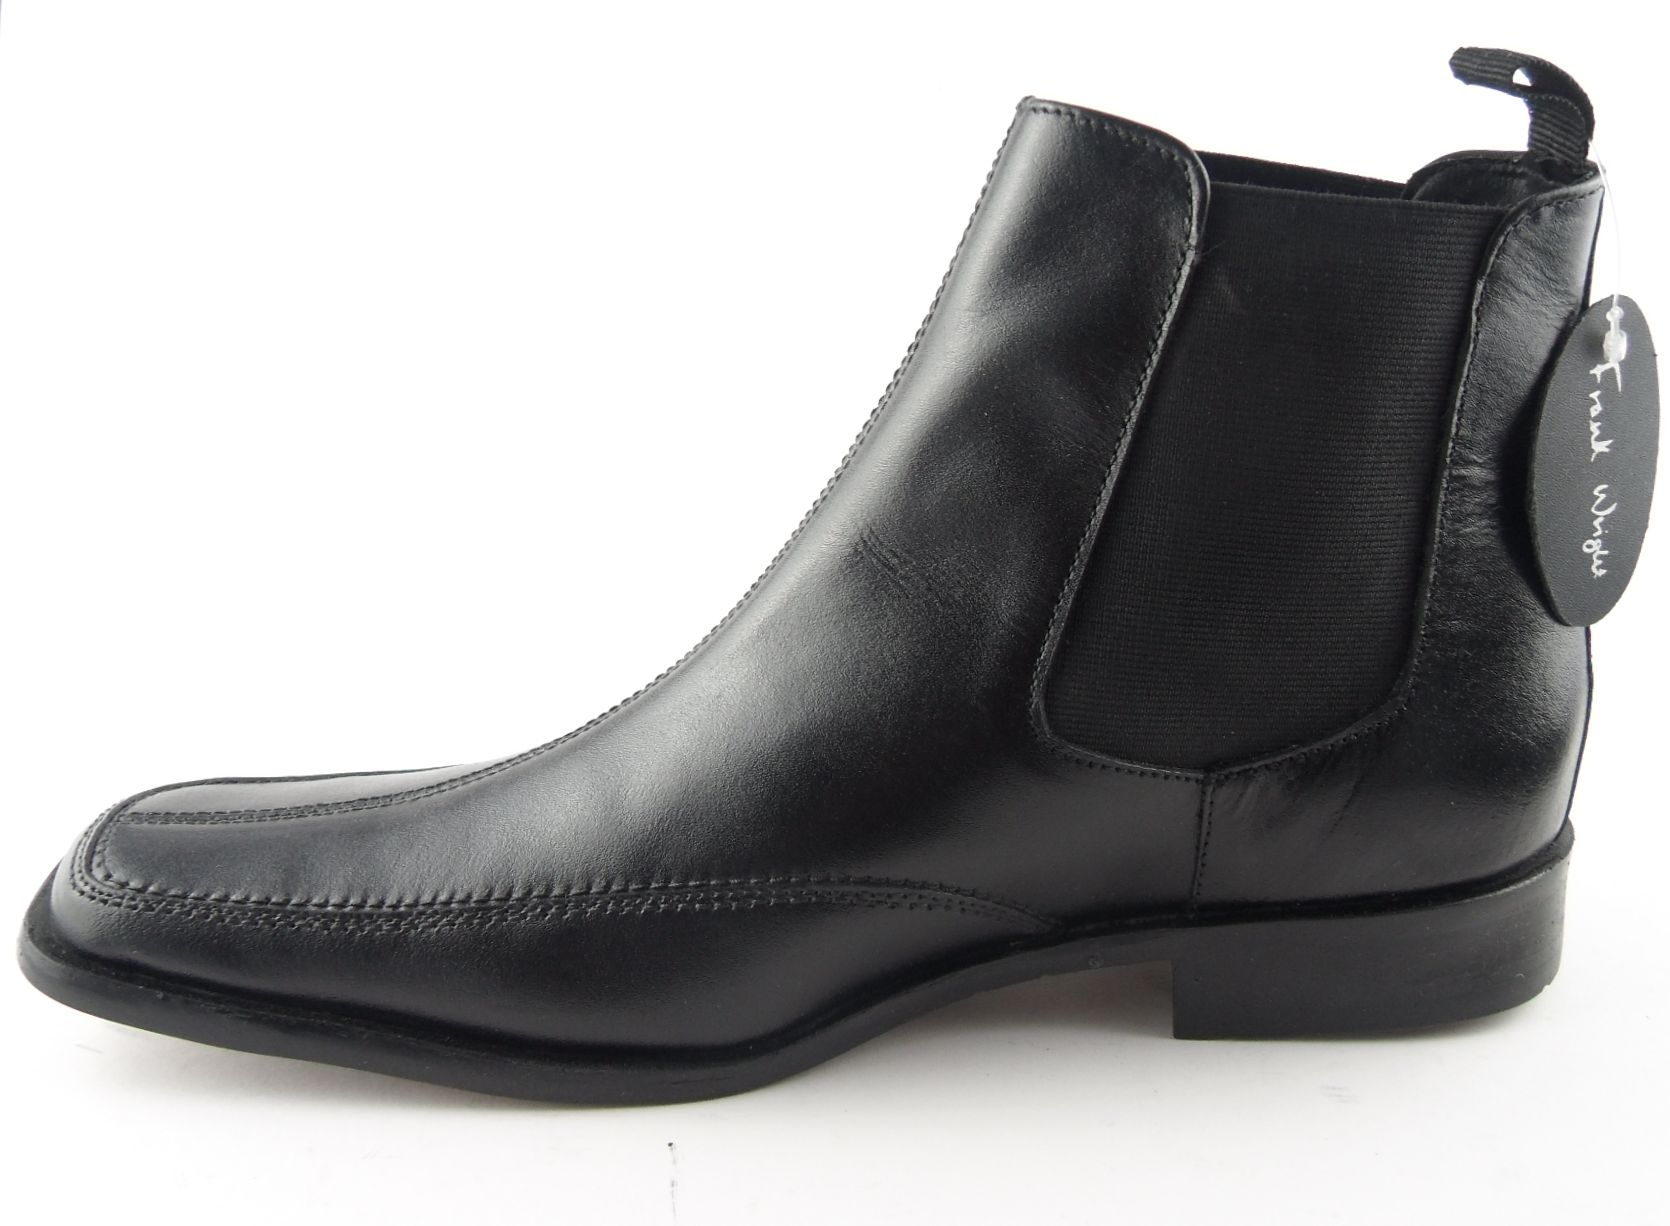 mens frank wright leather chelsea boots black size 6 11 ebay